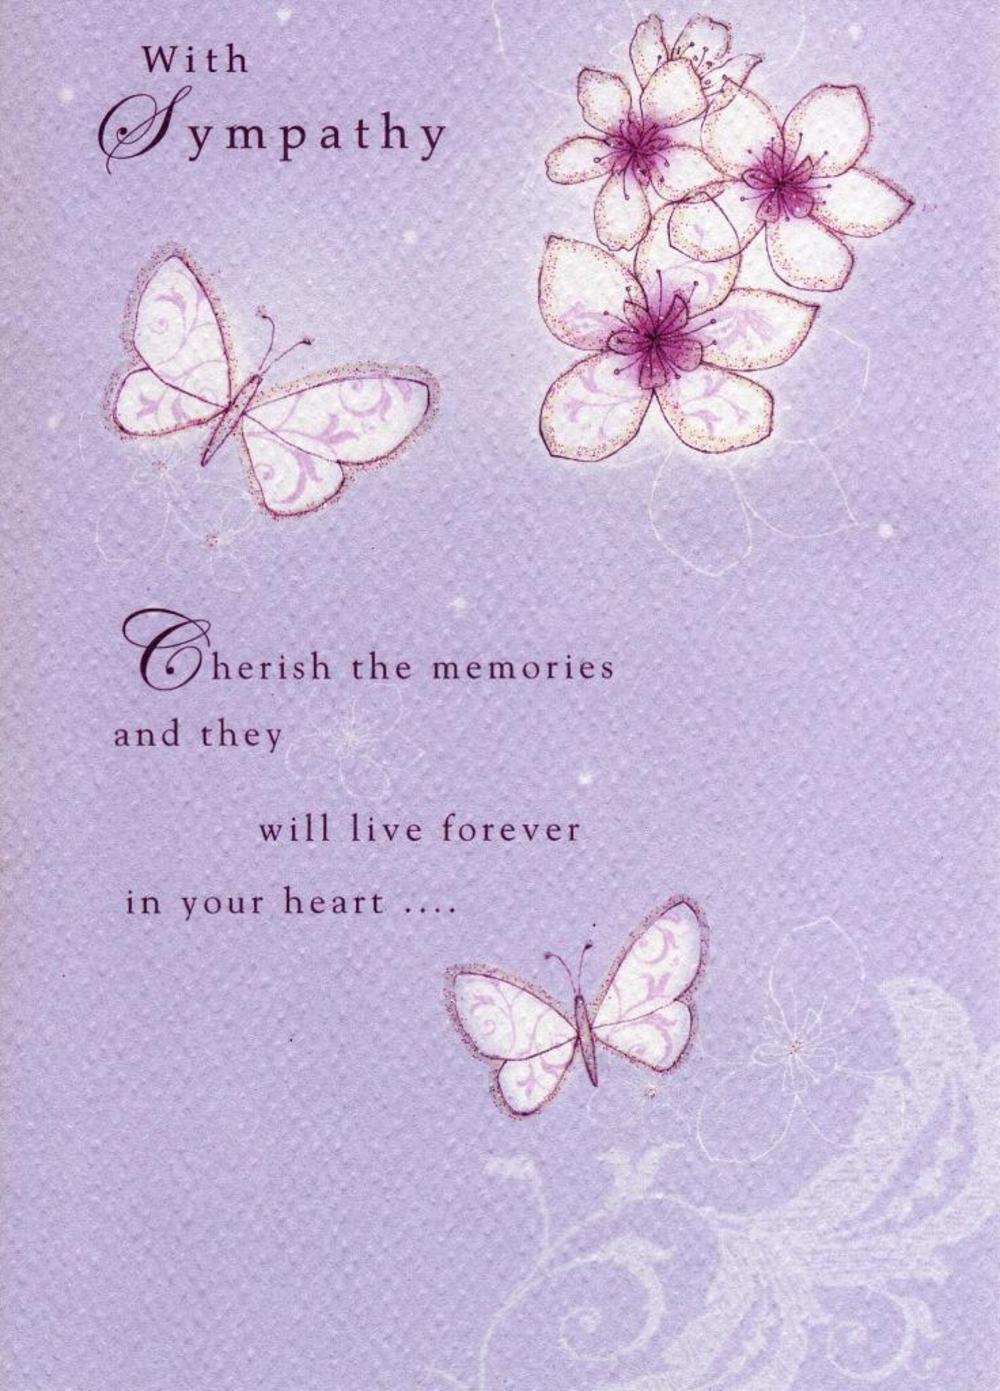 With Sympathy Glitter Flittered Greeting Card